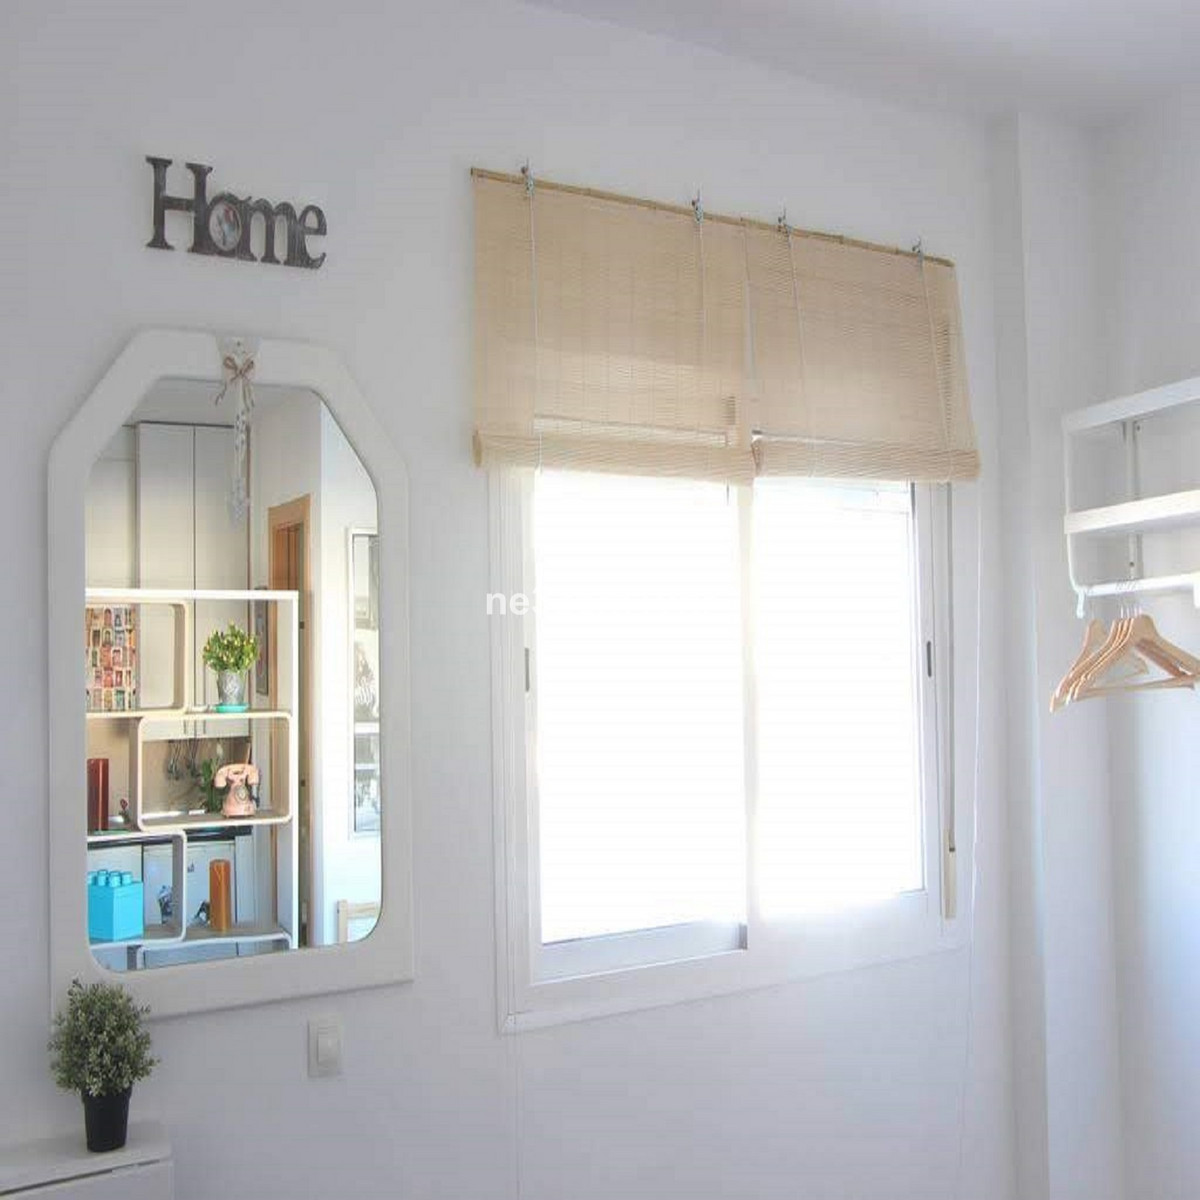 COZY, LICENSED TOURIST STUDIO JUST A STONE'S THROW FROM THE HISTORIC CENTRE!   The studio has 3,Spain